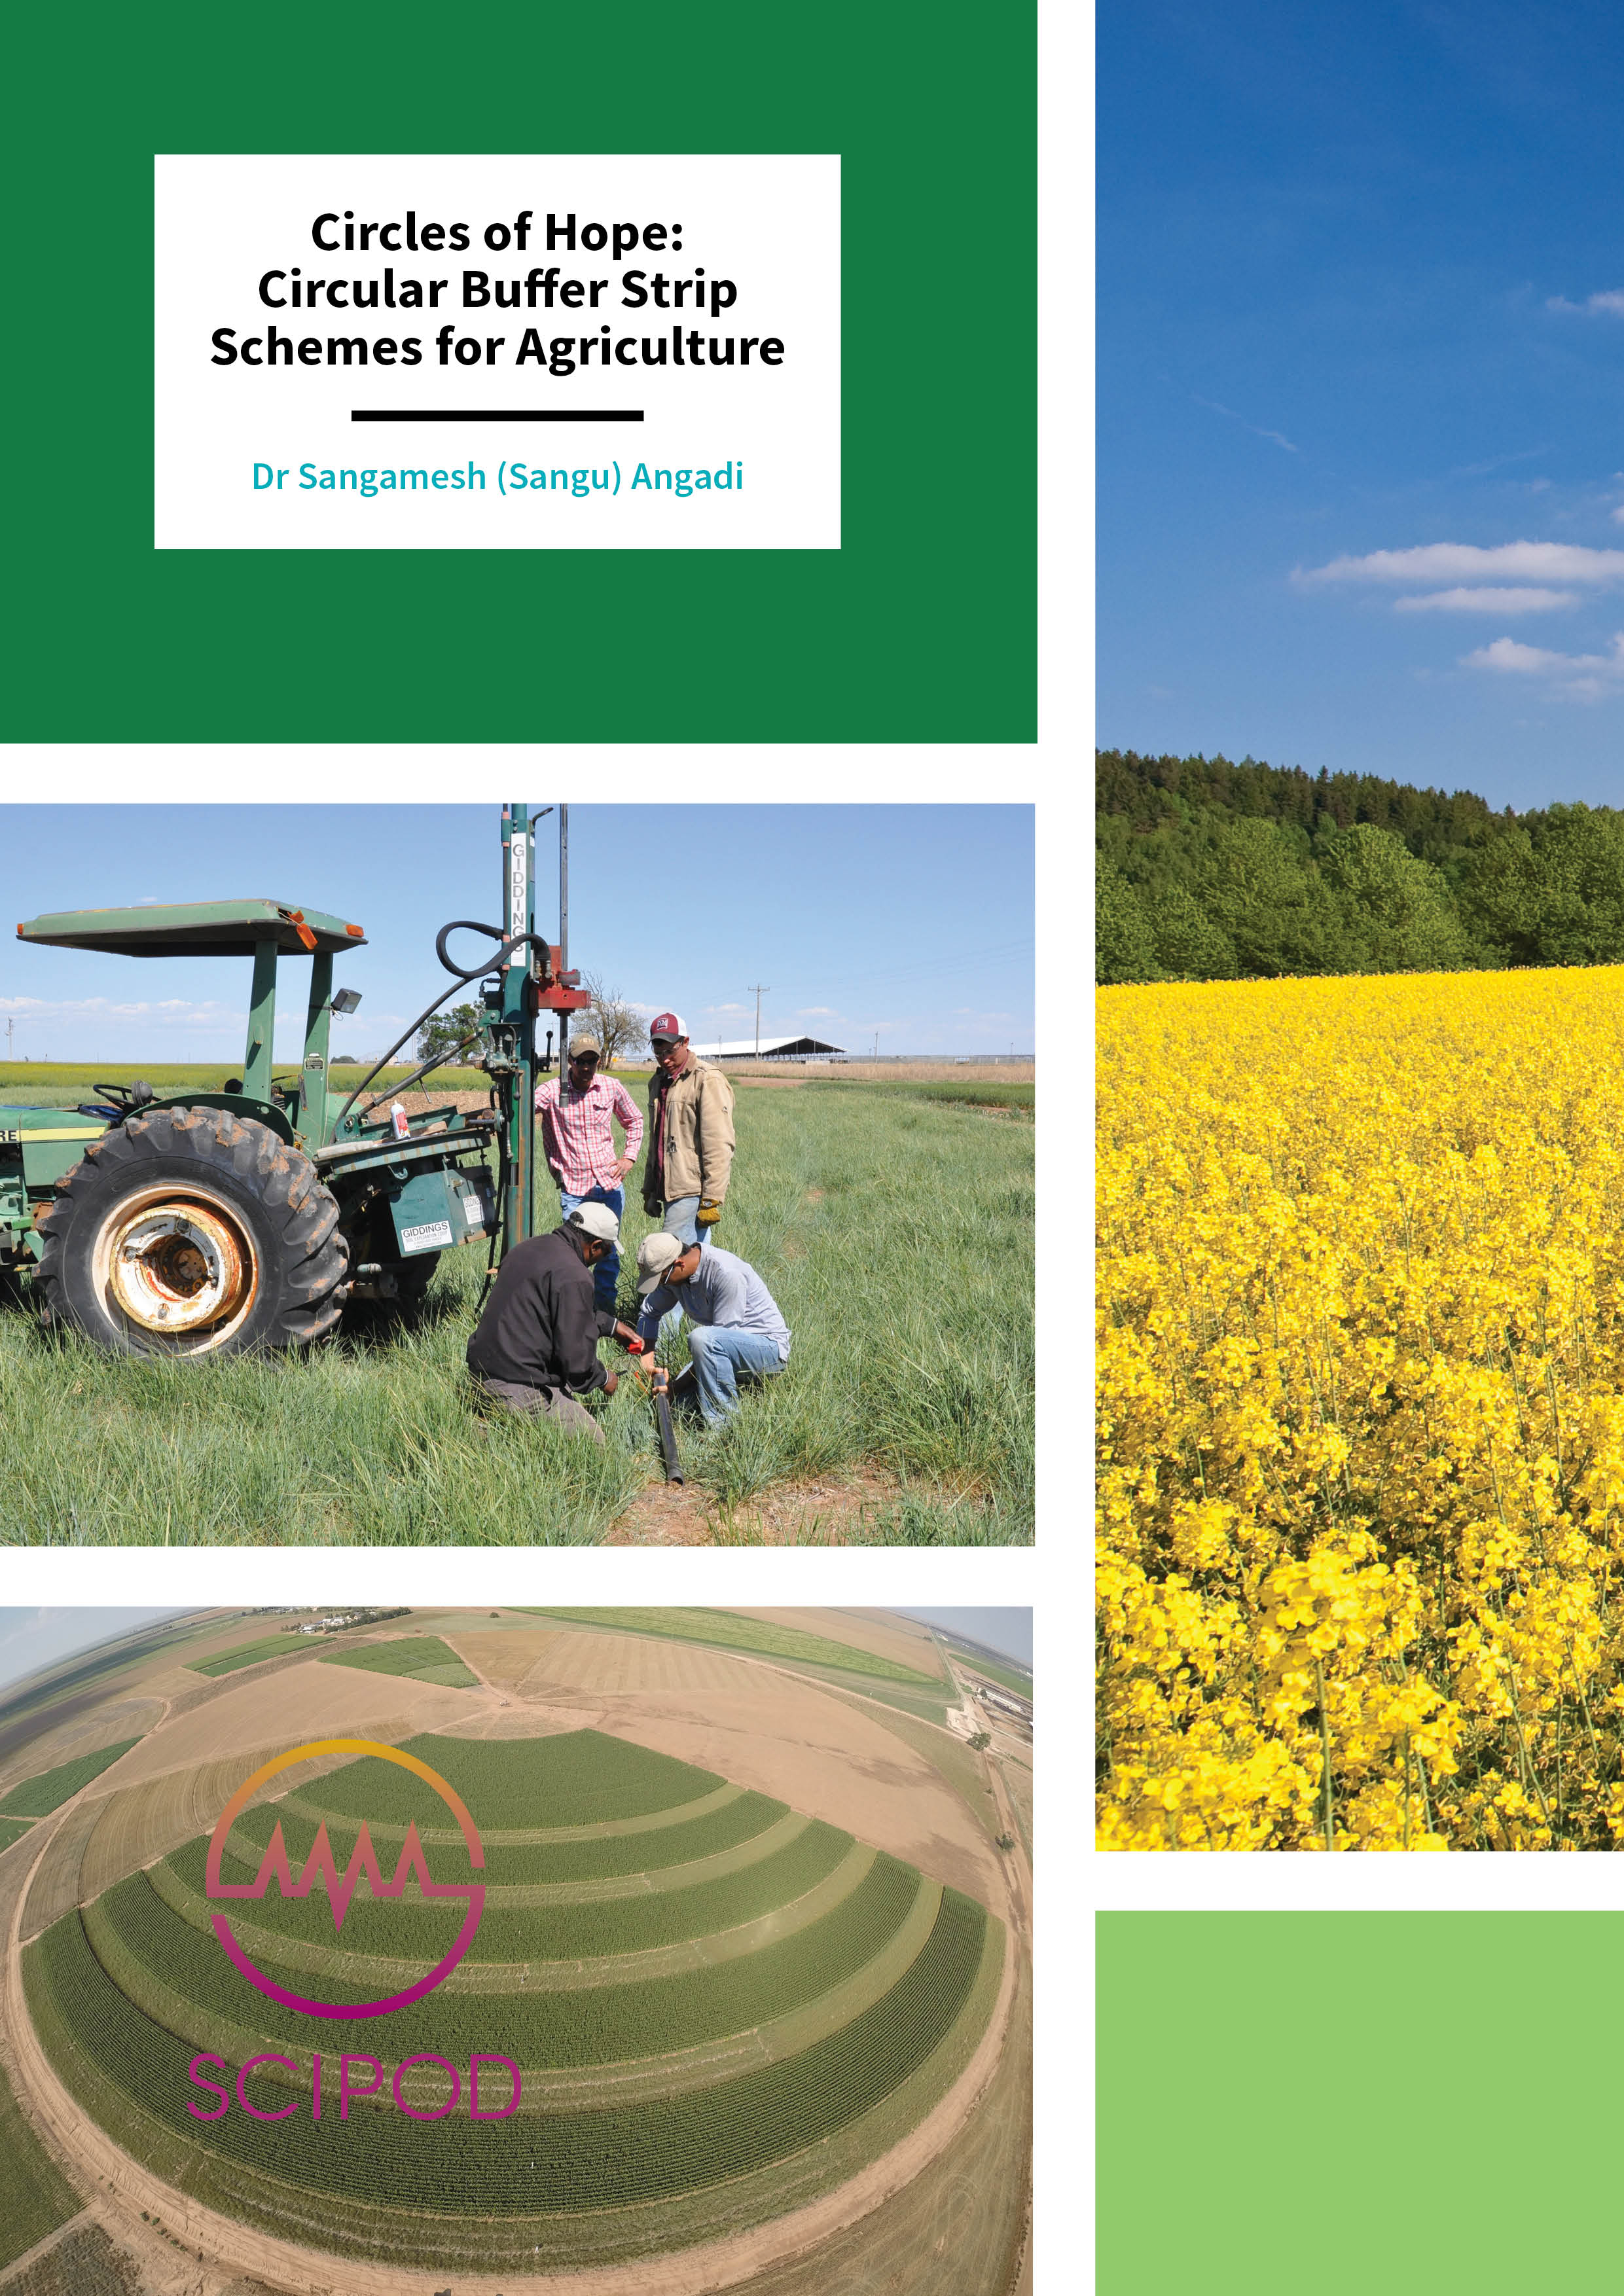 Circles of Hope: Circular Buffer Strip Schemes for Agriculture – Dr Sangamesh Angadi, New Mexico State University